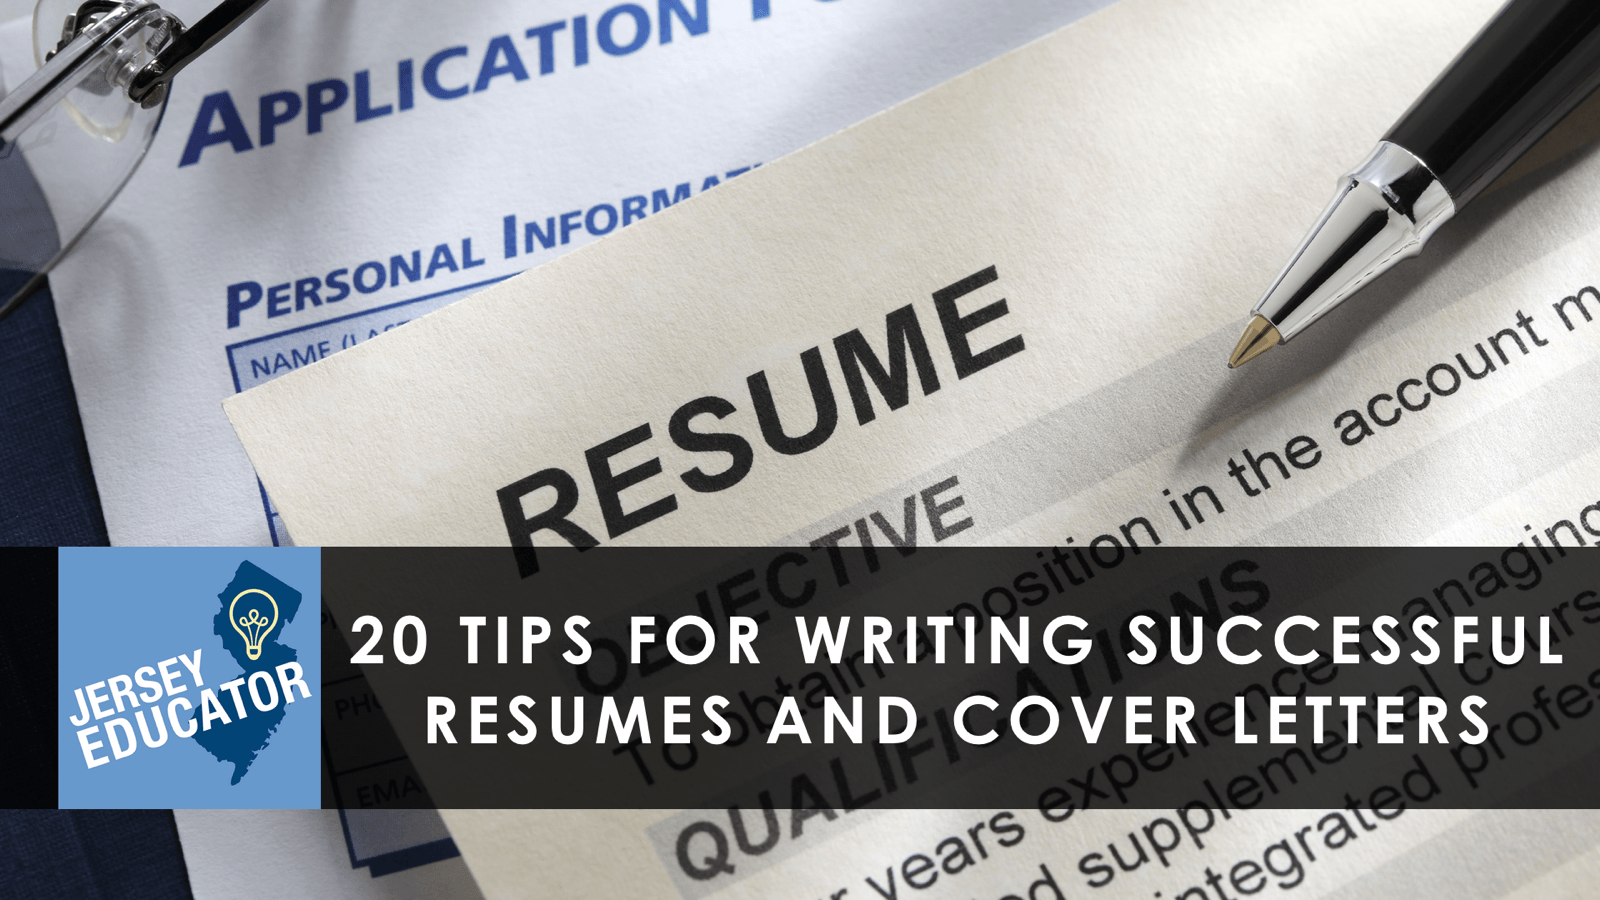 20 Tips For Writing Successful Resumes And Cover Letters New